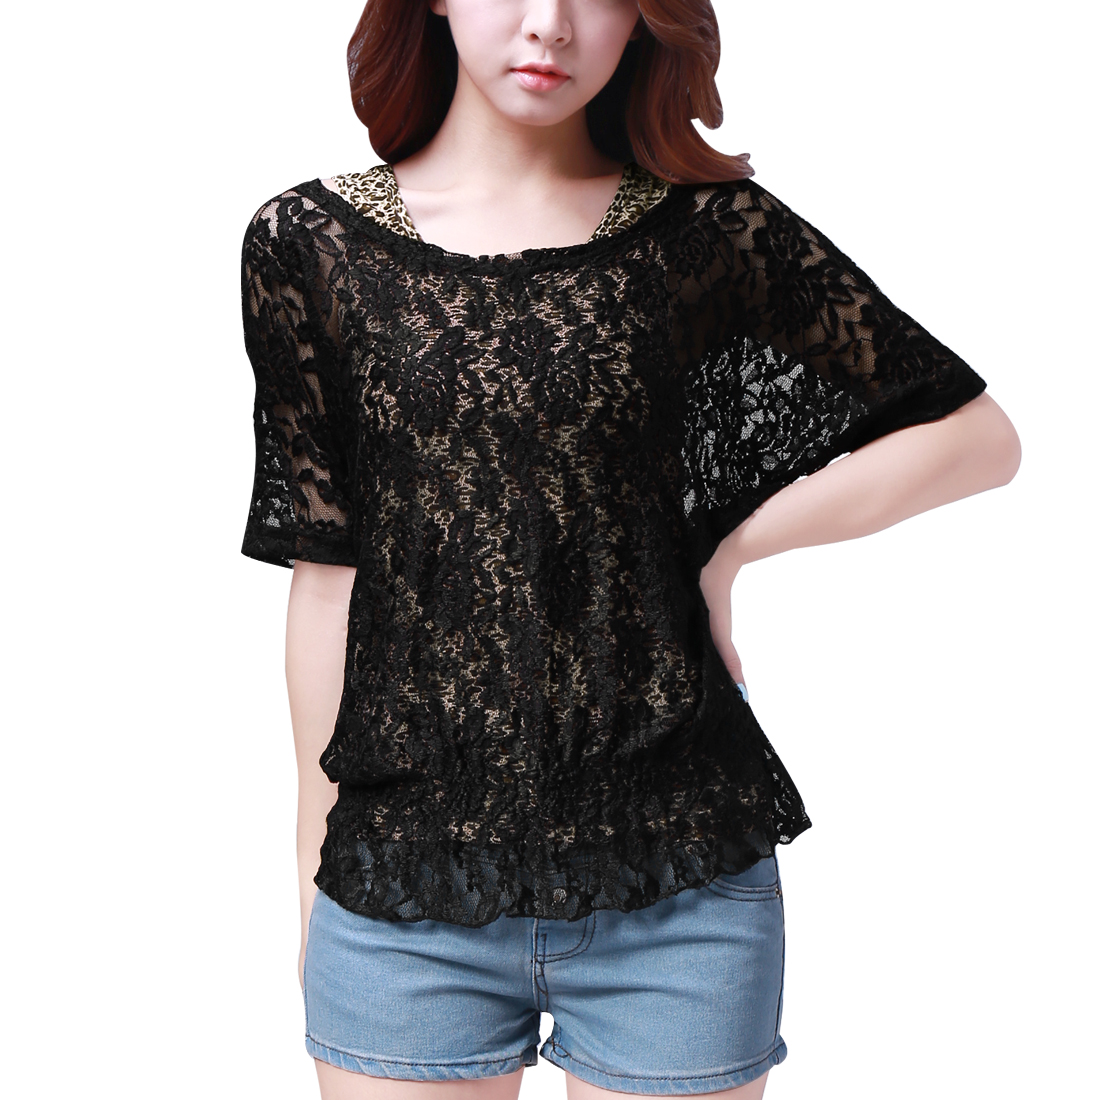 Unique Bargains Juniors 1 2 Sleeve Lace Shirt w Slim Tank Top Black (Size M   9) by